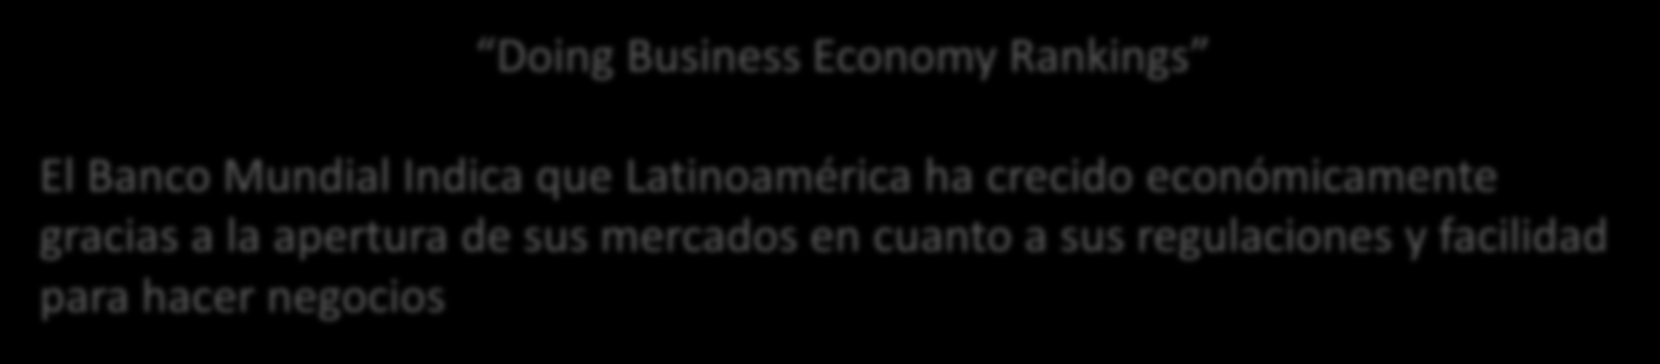 Retos y oportunidades Regulaciones e Infraestructura Doing Business Economy Rankings El Banco Mundial Indica que